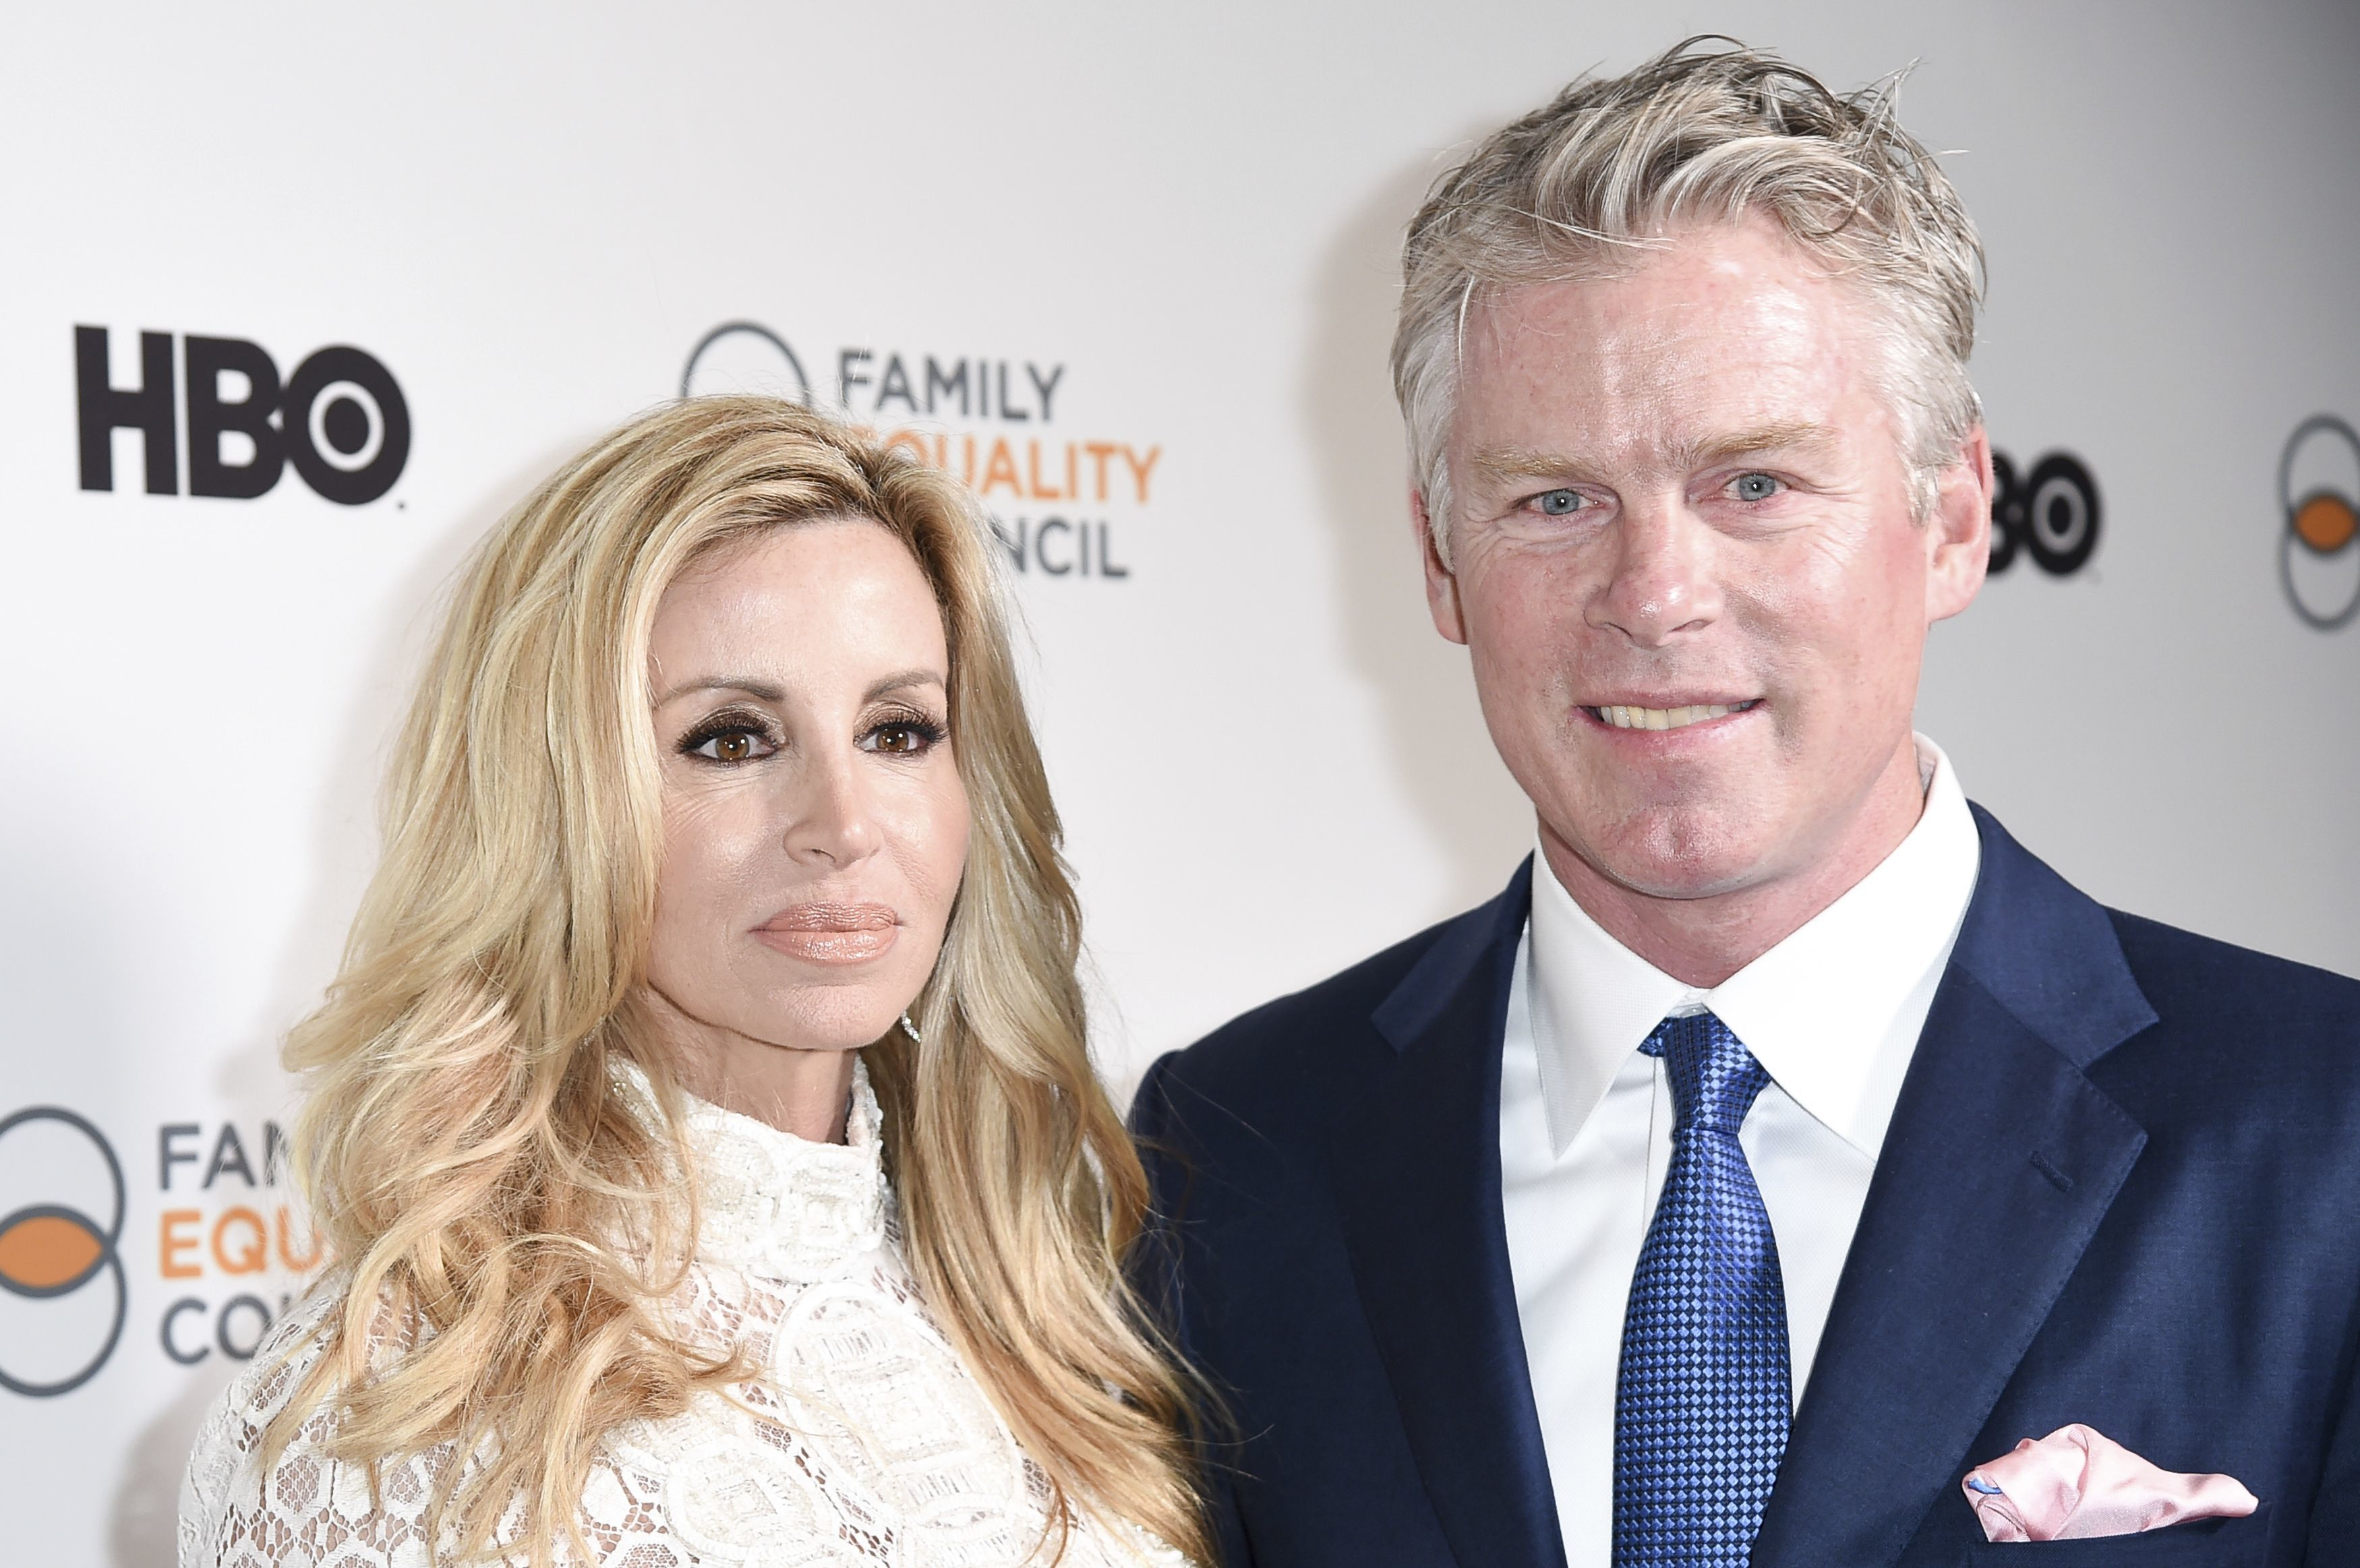 Camille Grammer and fiance David C. Meyer attend the 2017 Impact Awards held at the Beverly Wilshire Hotel in Beverly Hills on March 11, 2017.